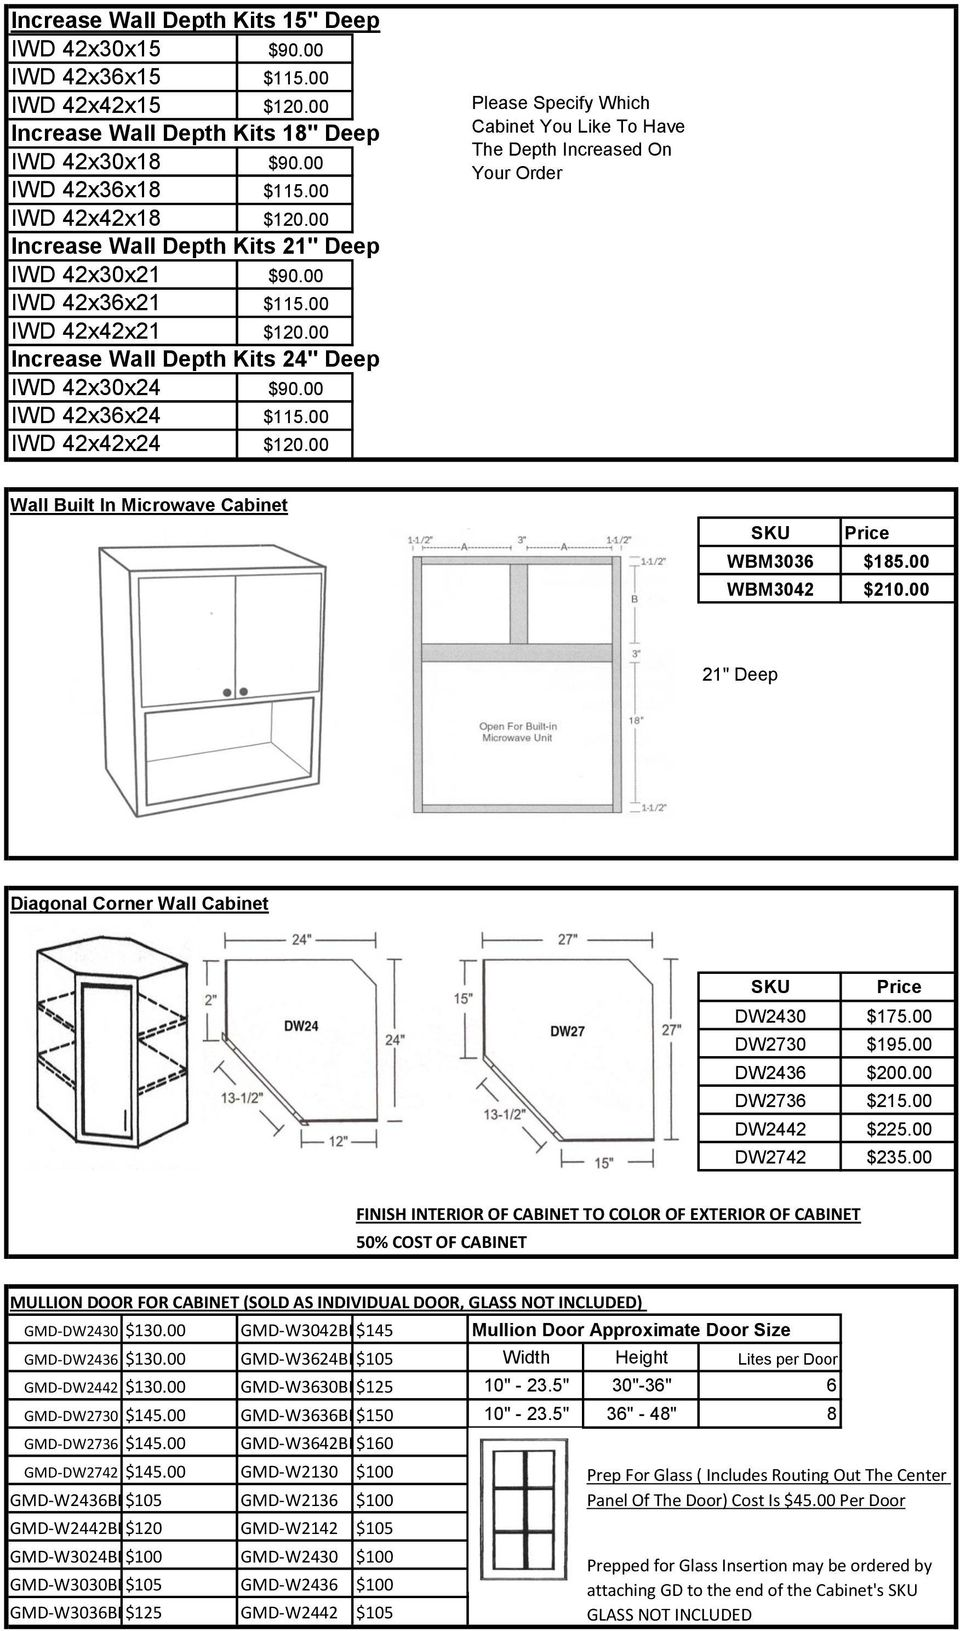 "00 Please Specify Which Cabinet You Like To Have The Depth Increased On Your Order Wall Built In Microwave Cabinet WBM3036 $185.00 WBM3042 $210.00 21"" Deep Diagonal Corner Wall Cabinet DW2430 $175."